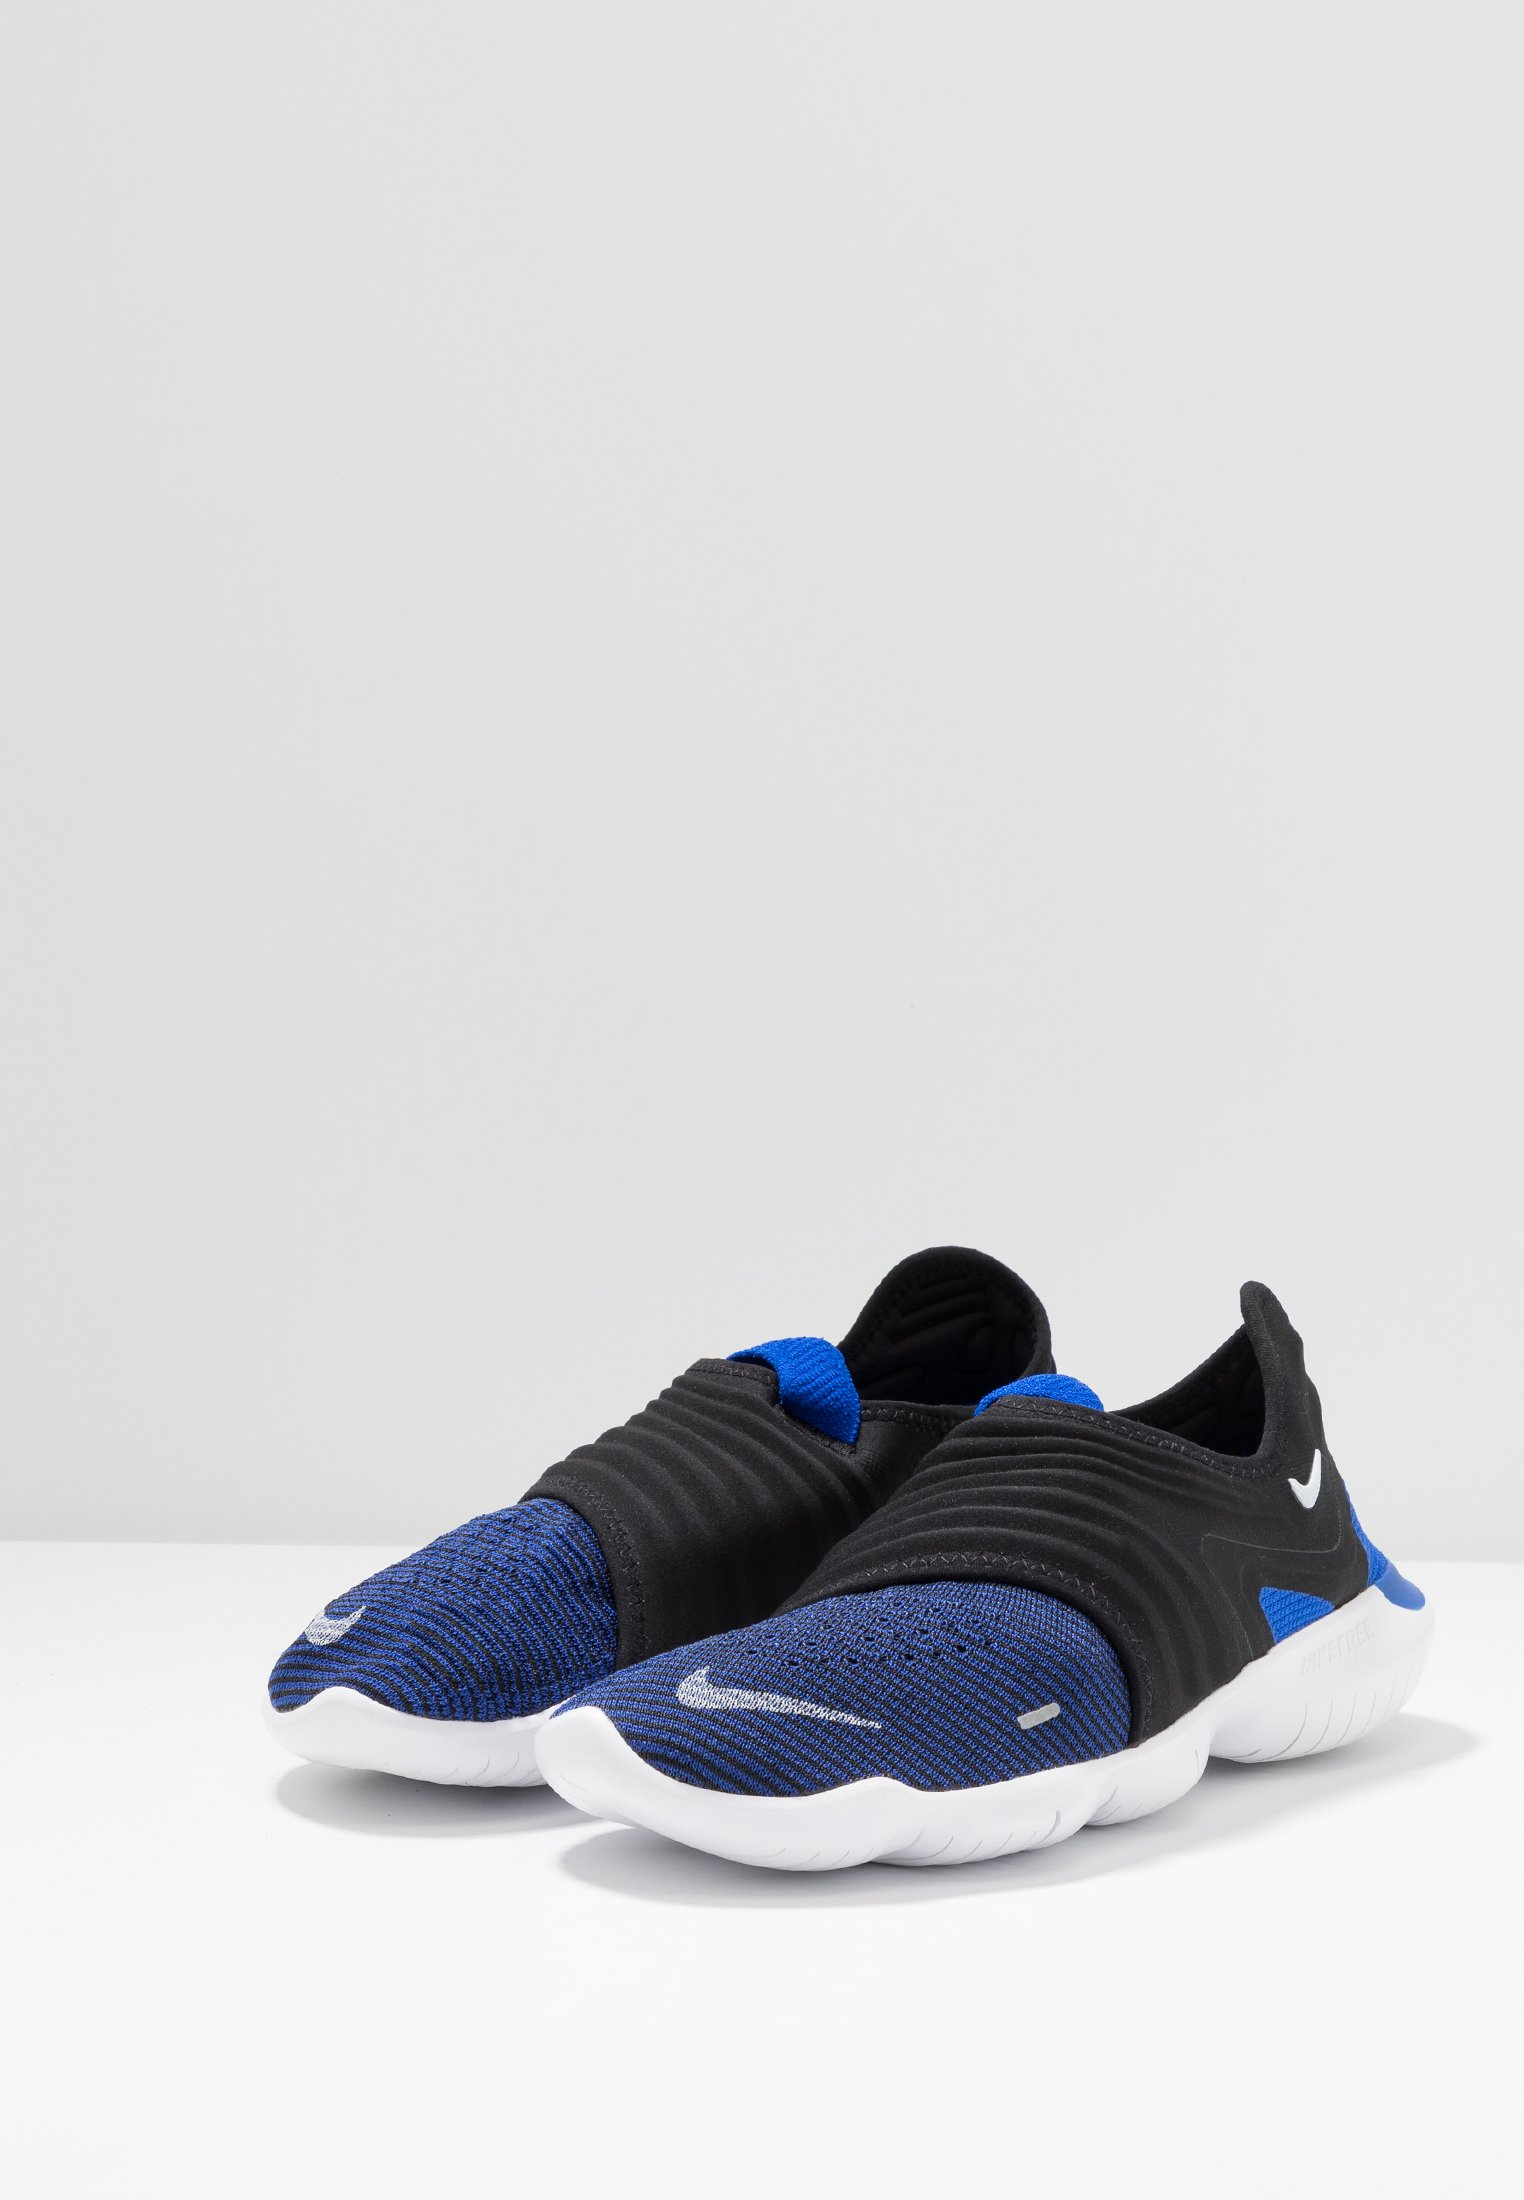 Free Racer Nike black white 3 Blue Rn Performance Flyknit De 0Chaussures Course Neutres f67bgy